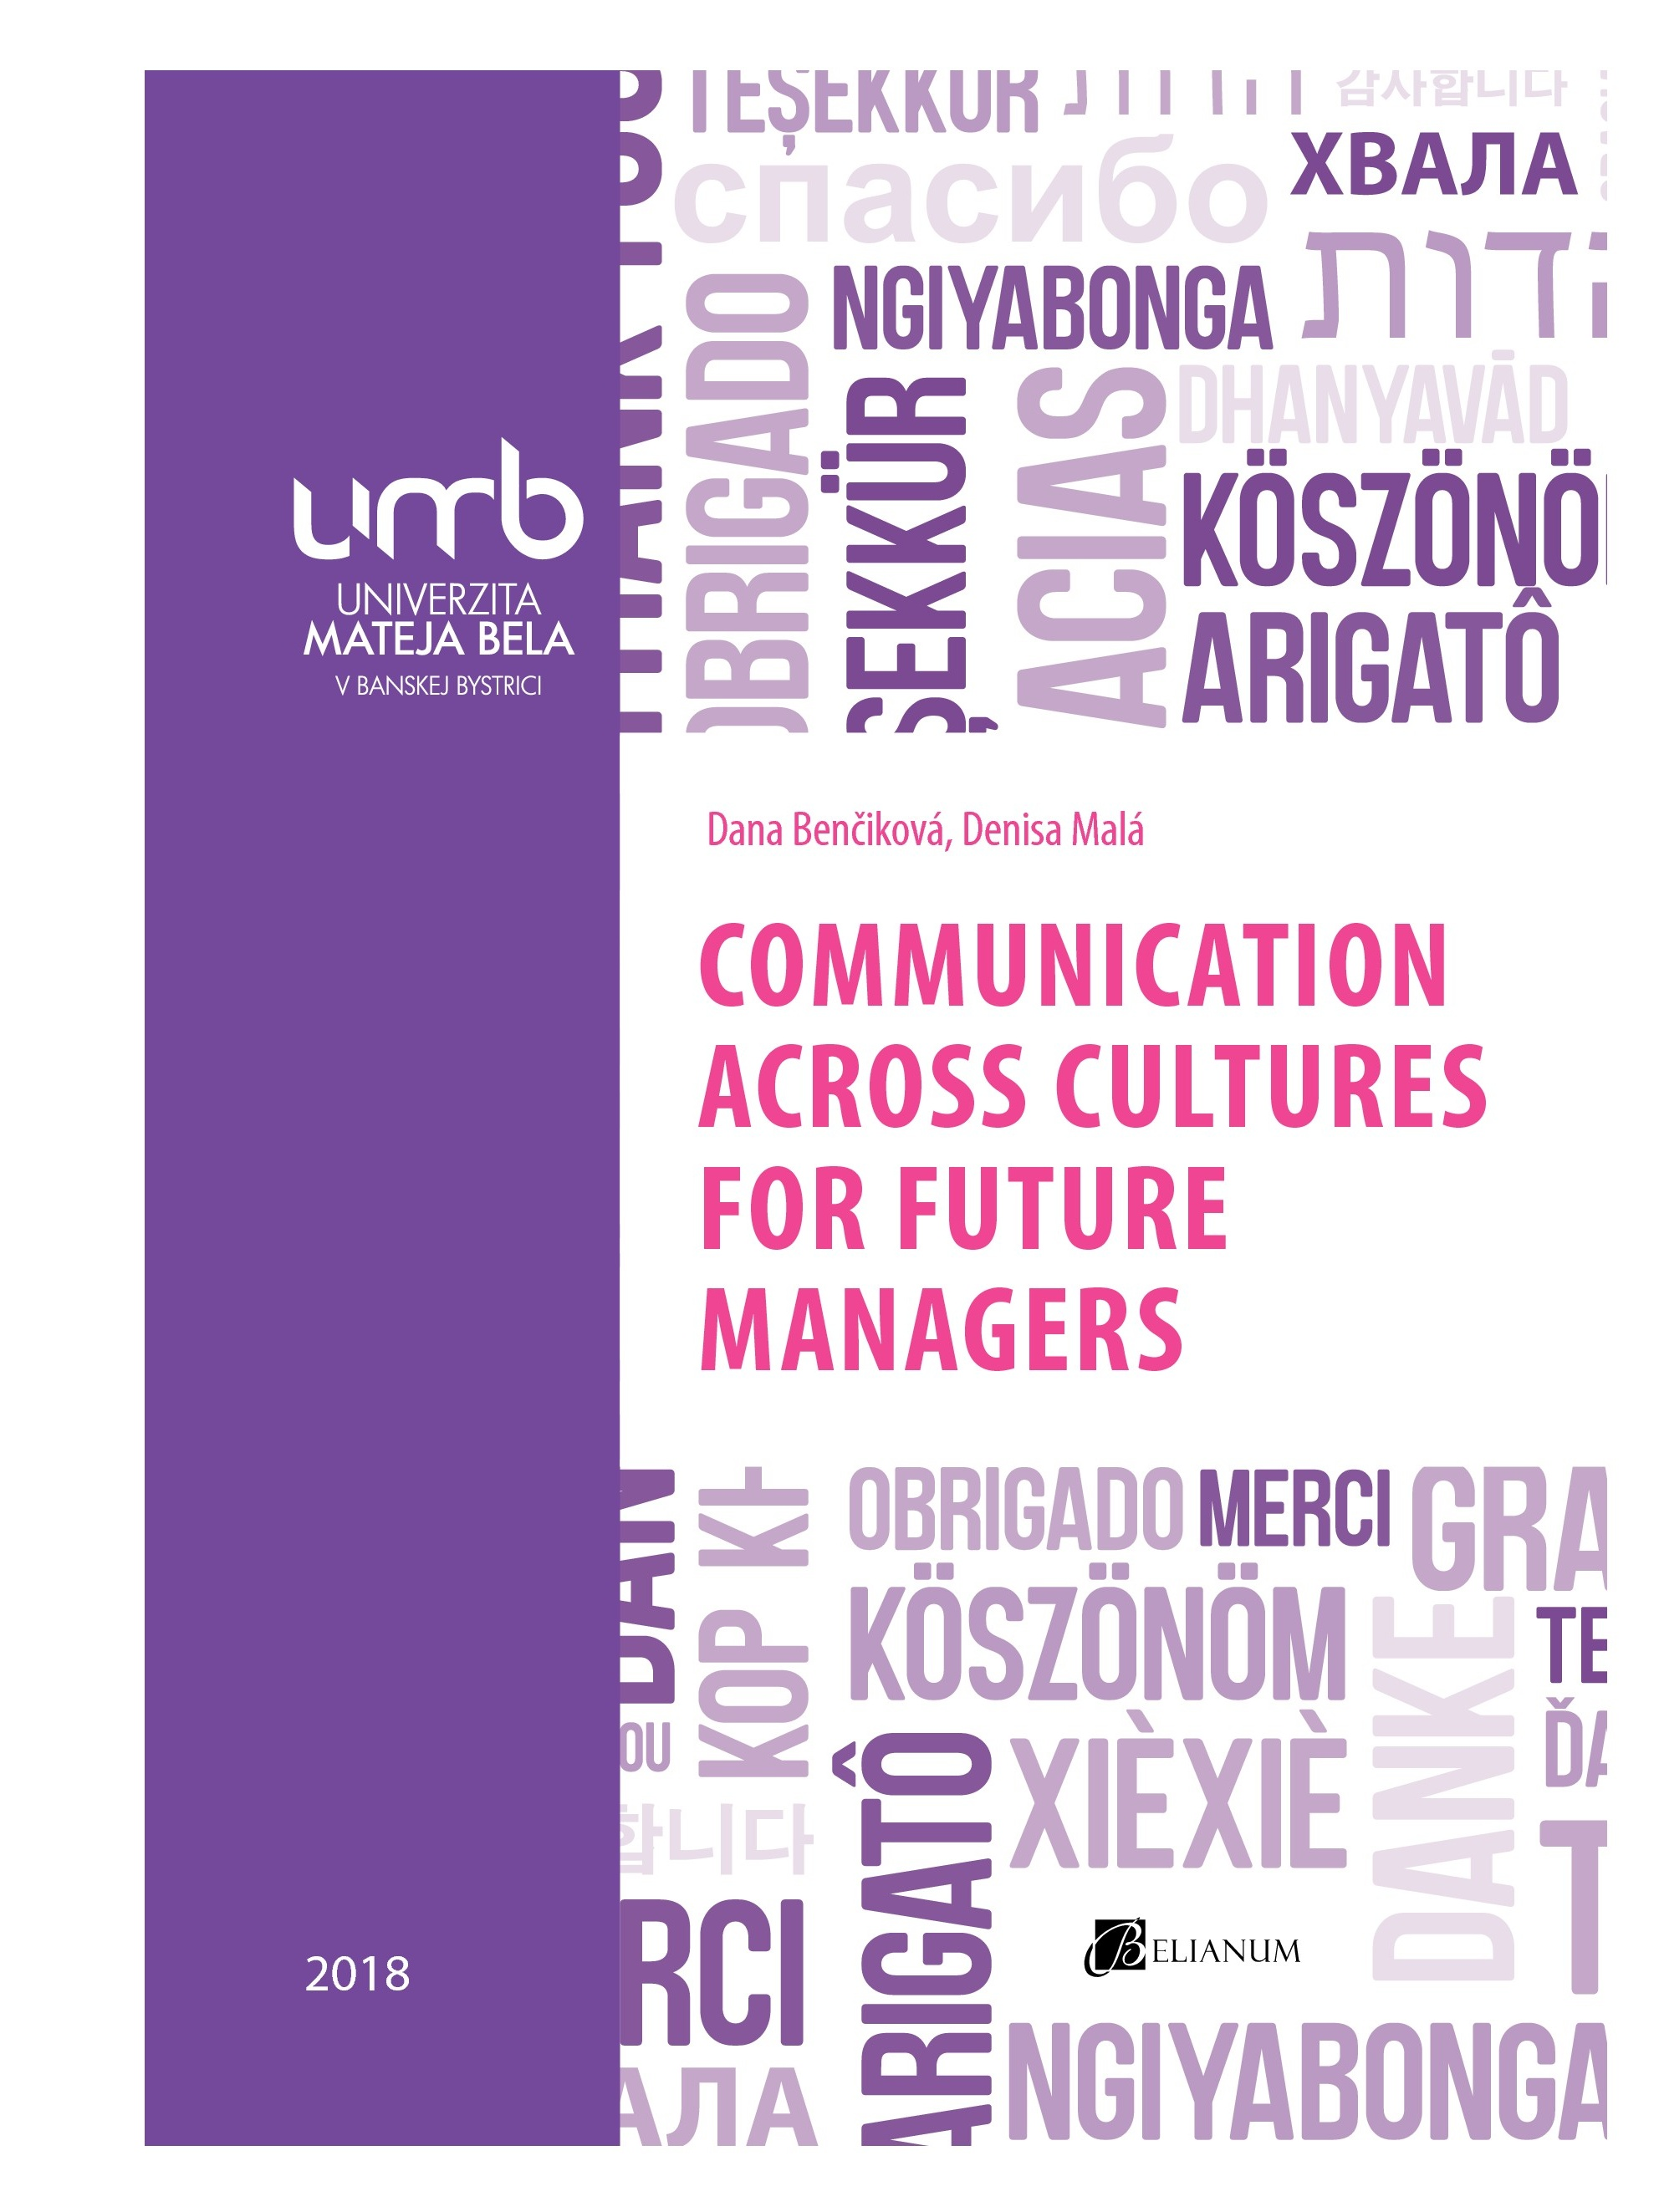 COMMUNICATION ACROSS CULTURES FOR FUTURE MANAGERS